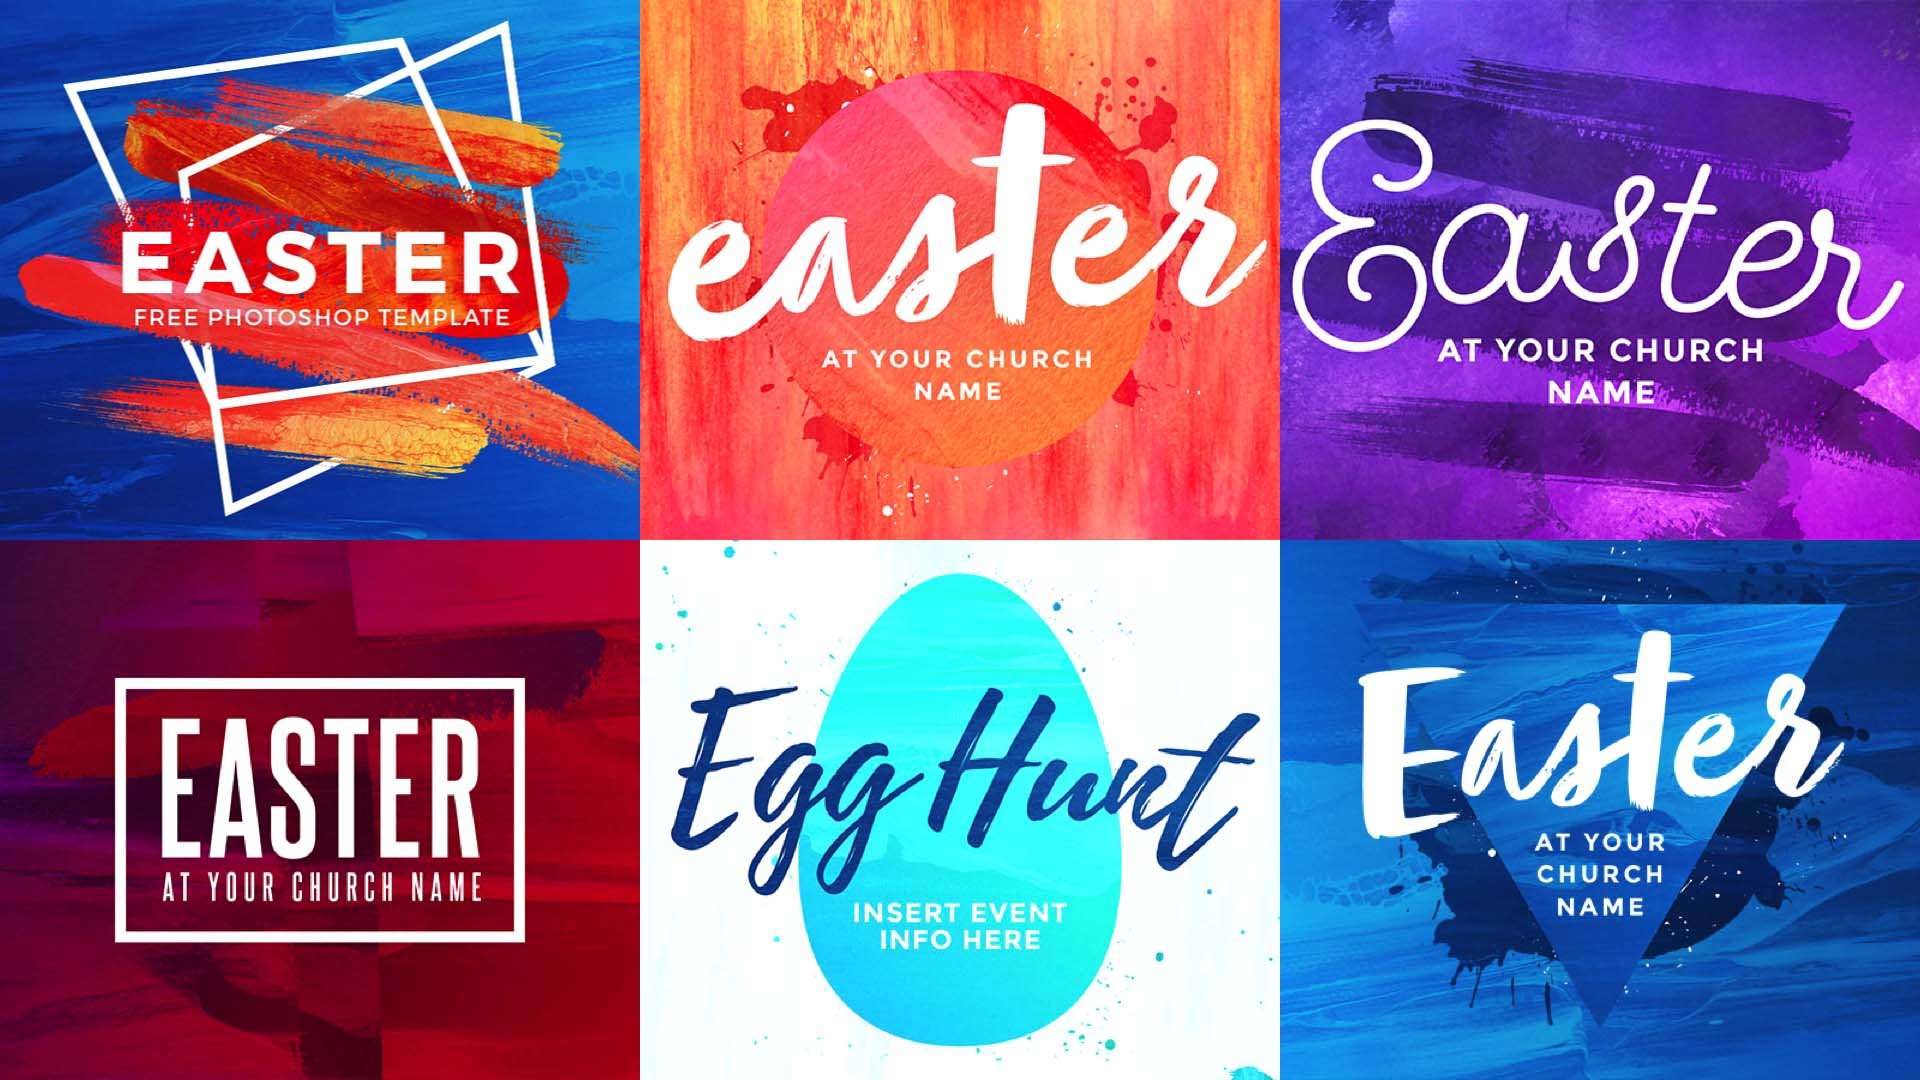 6 Must-Have Photoshop Templates For Easter